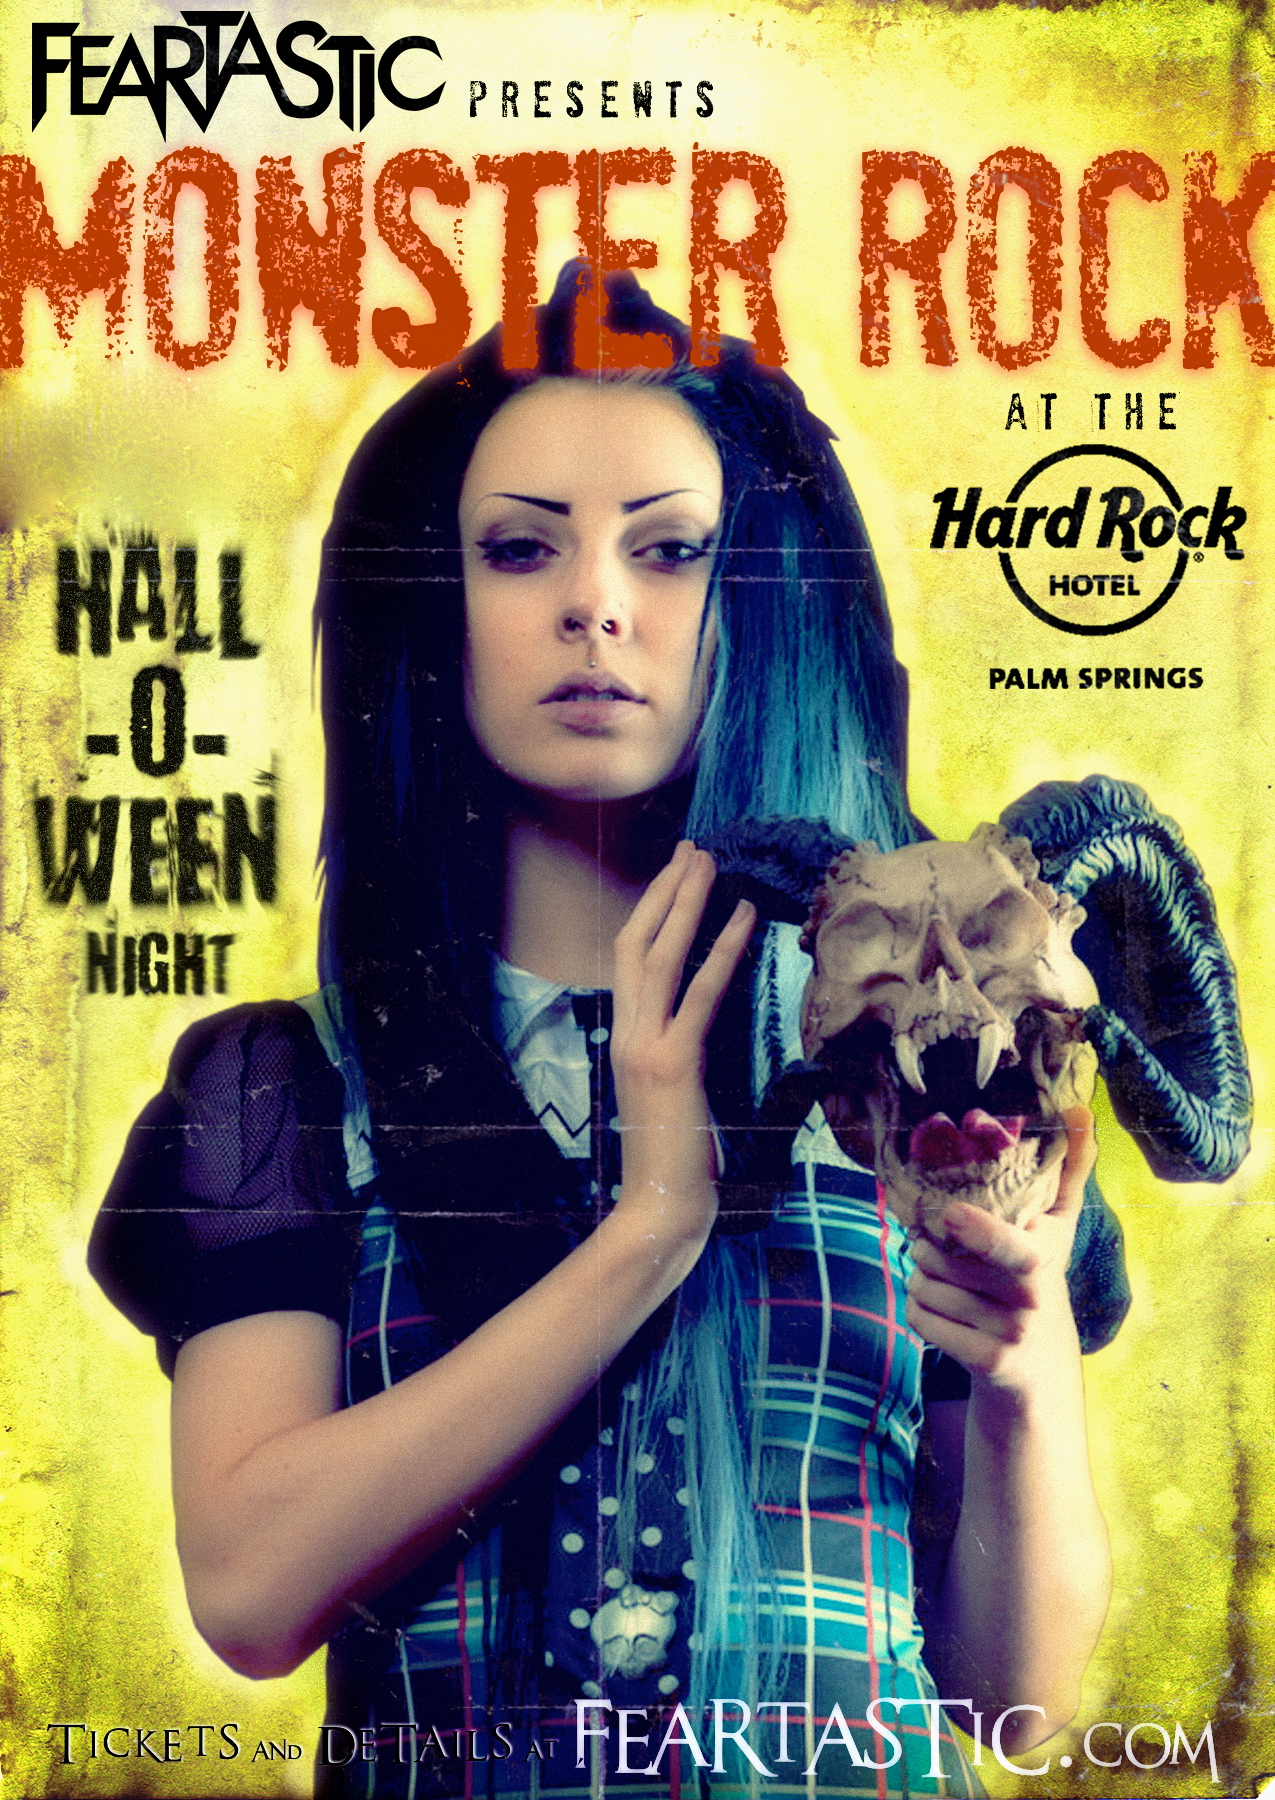 tickets for bb's monster rock halloween party at the hard rock in